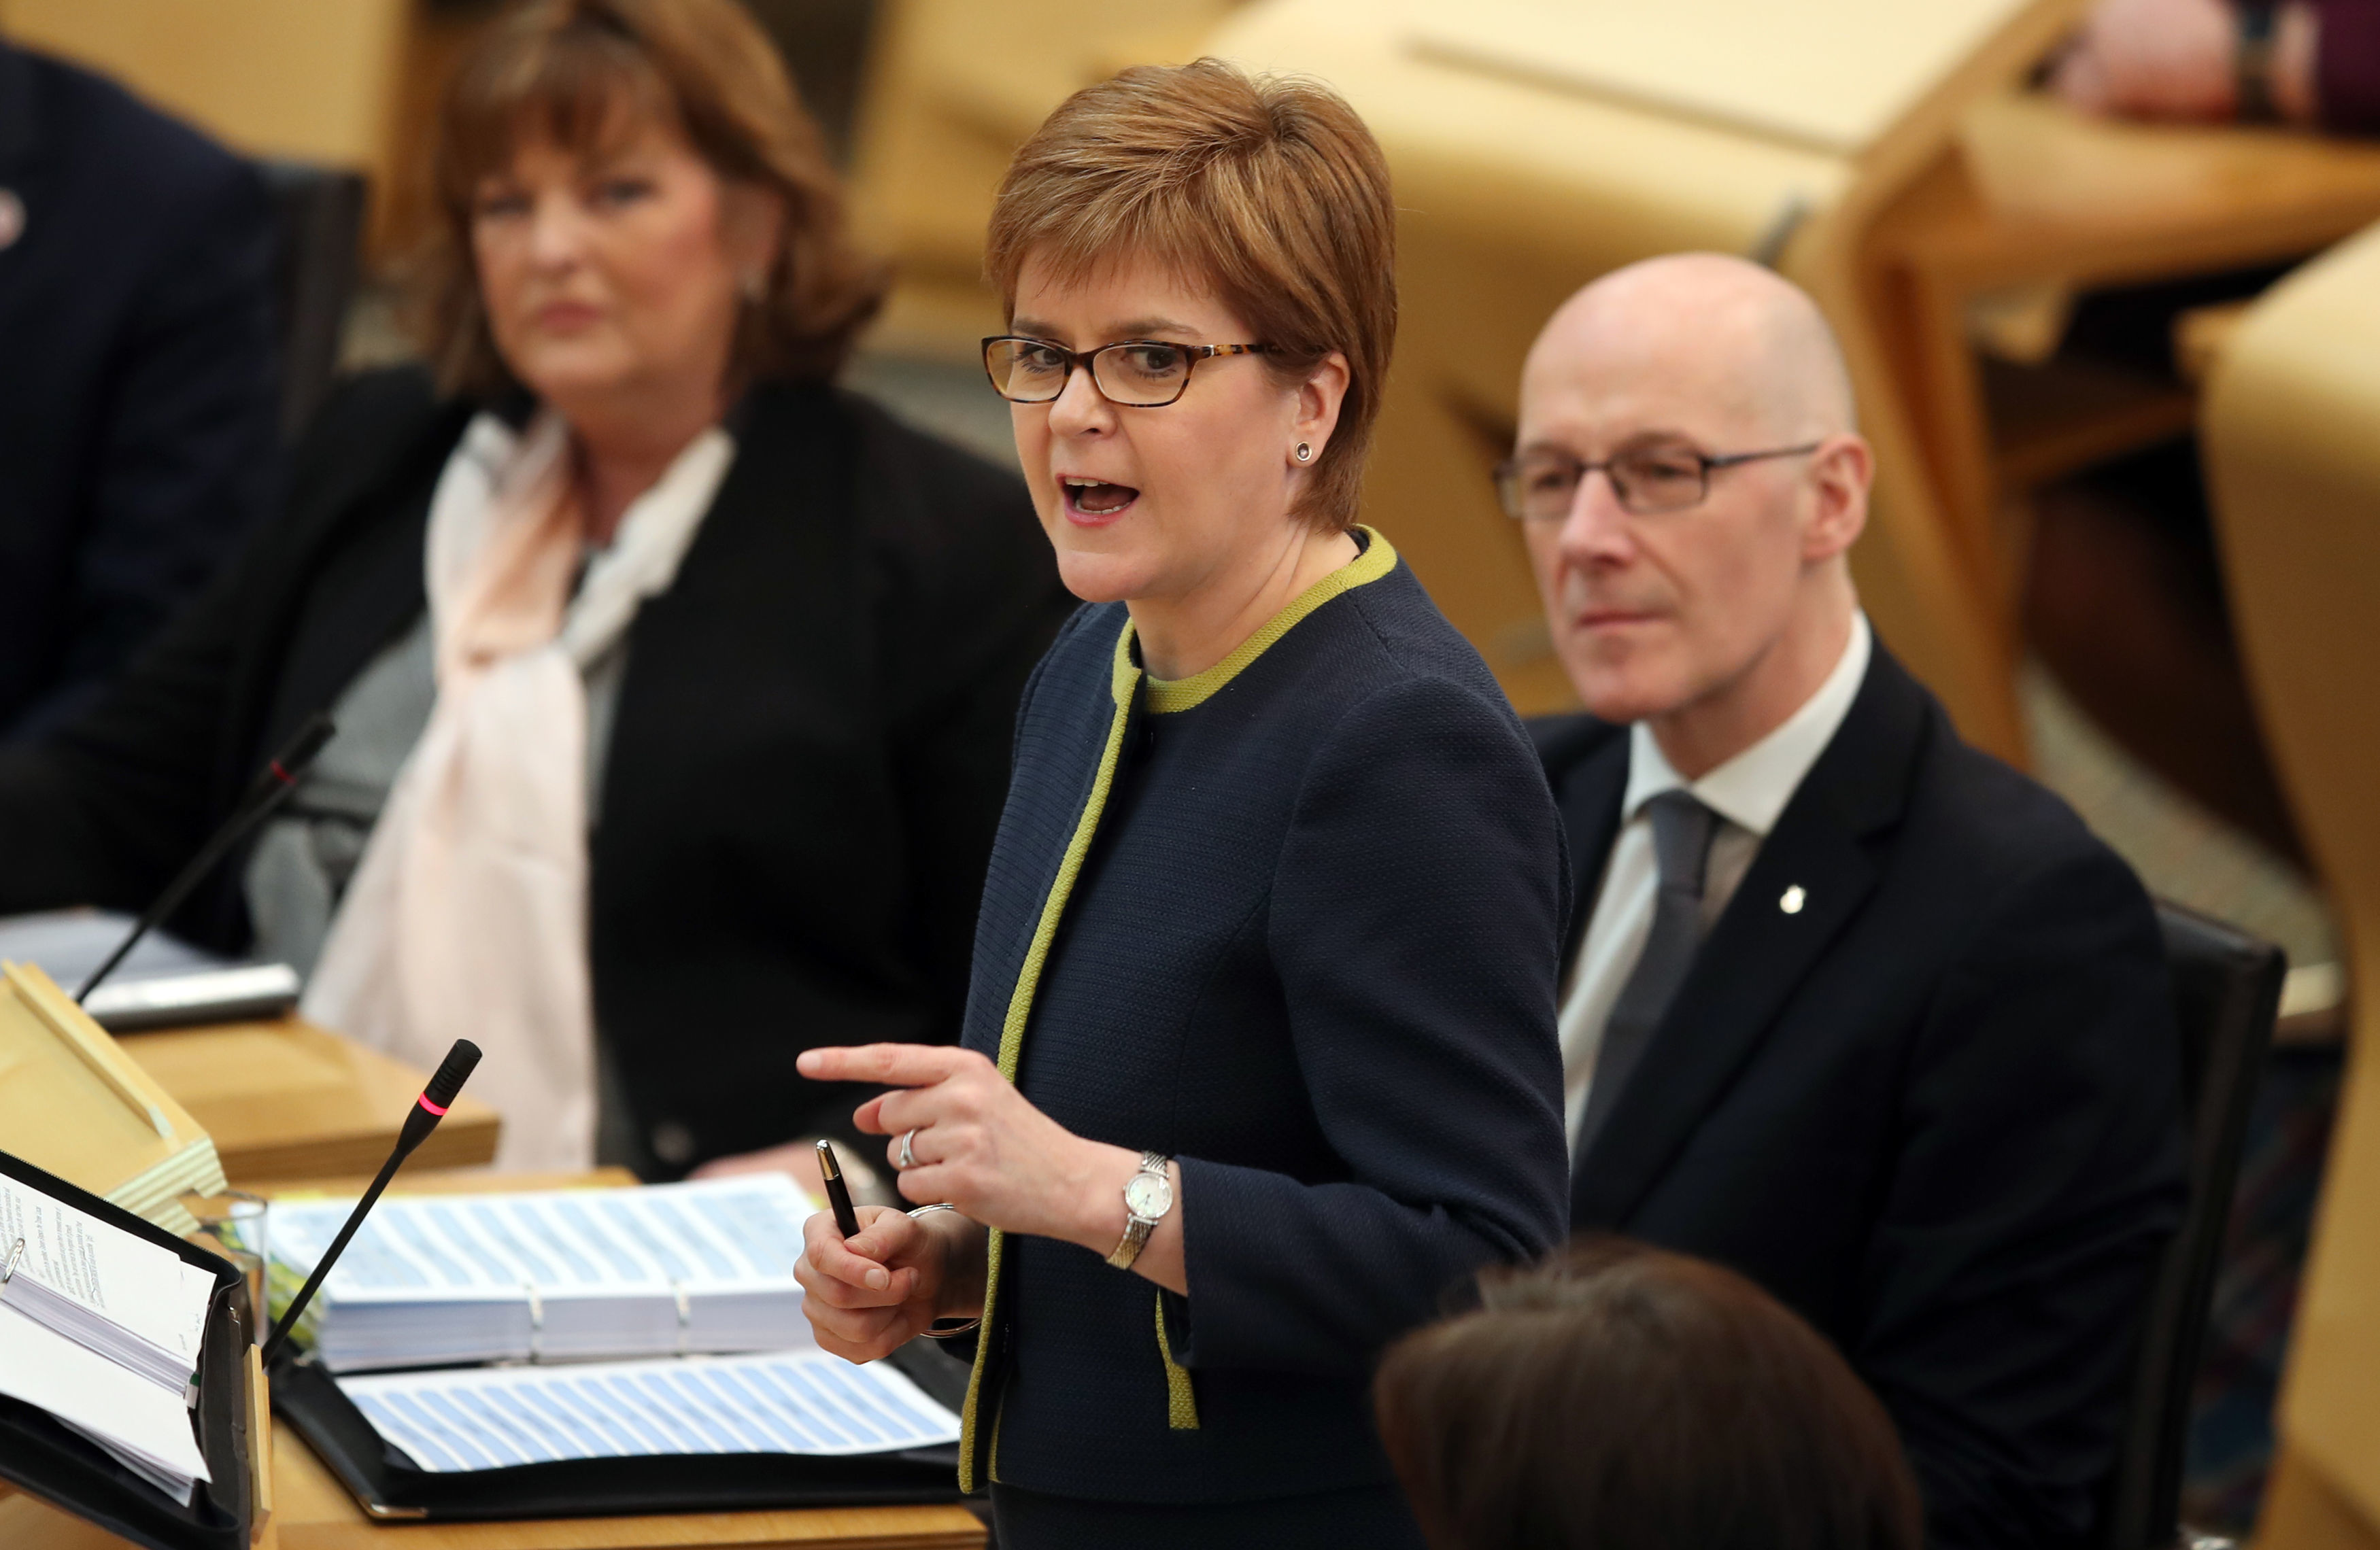 First Minister Nicola Sturgeon during First Minister's Questions. Photo credit should read: Jane Barlow/PA Wire